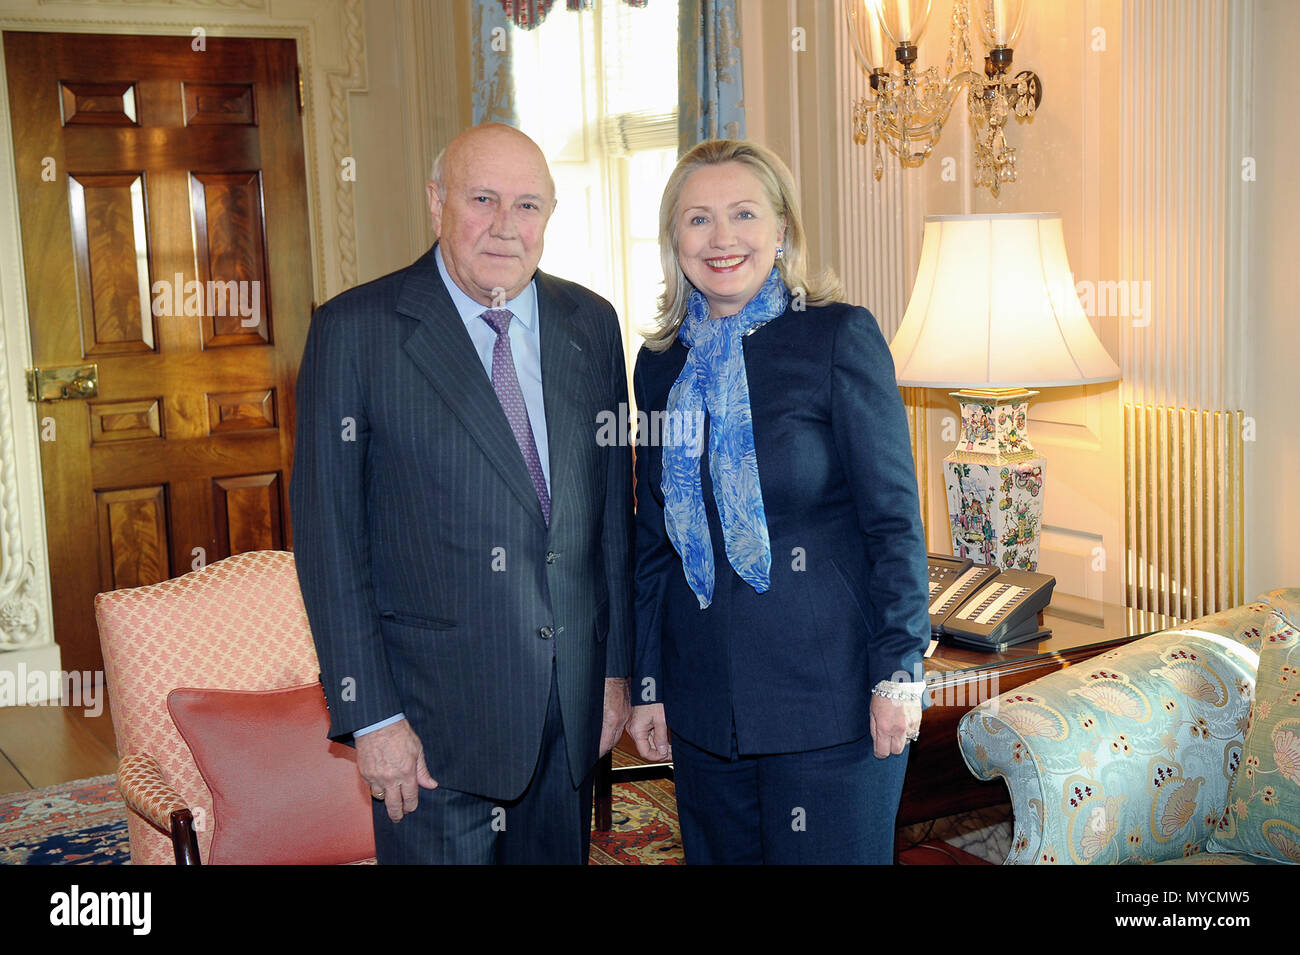 U.S. Secretary of State Hillary Rodham Clinton meets with F.W. de Klerk, former President of the Republic of South Africa, at the U.S. Department of State in Washington, D.C., on March 6, 2012 Stock Photo